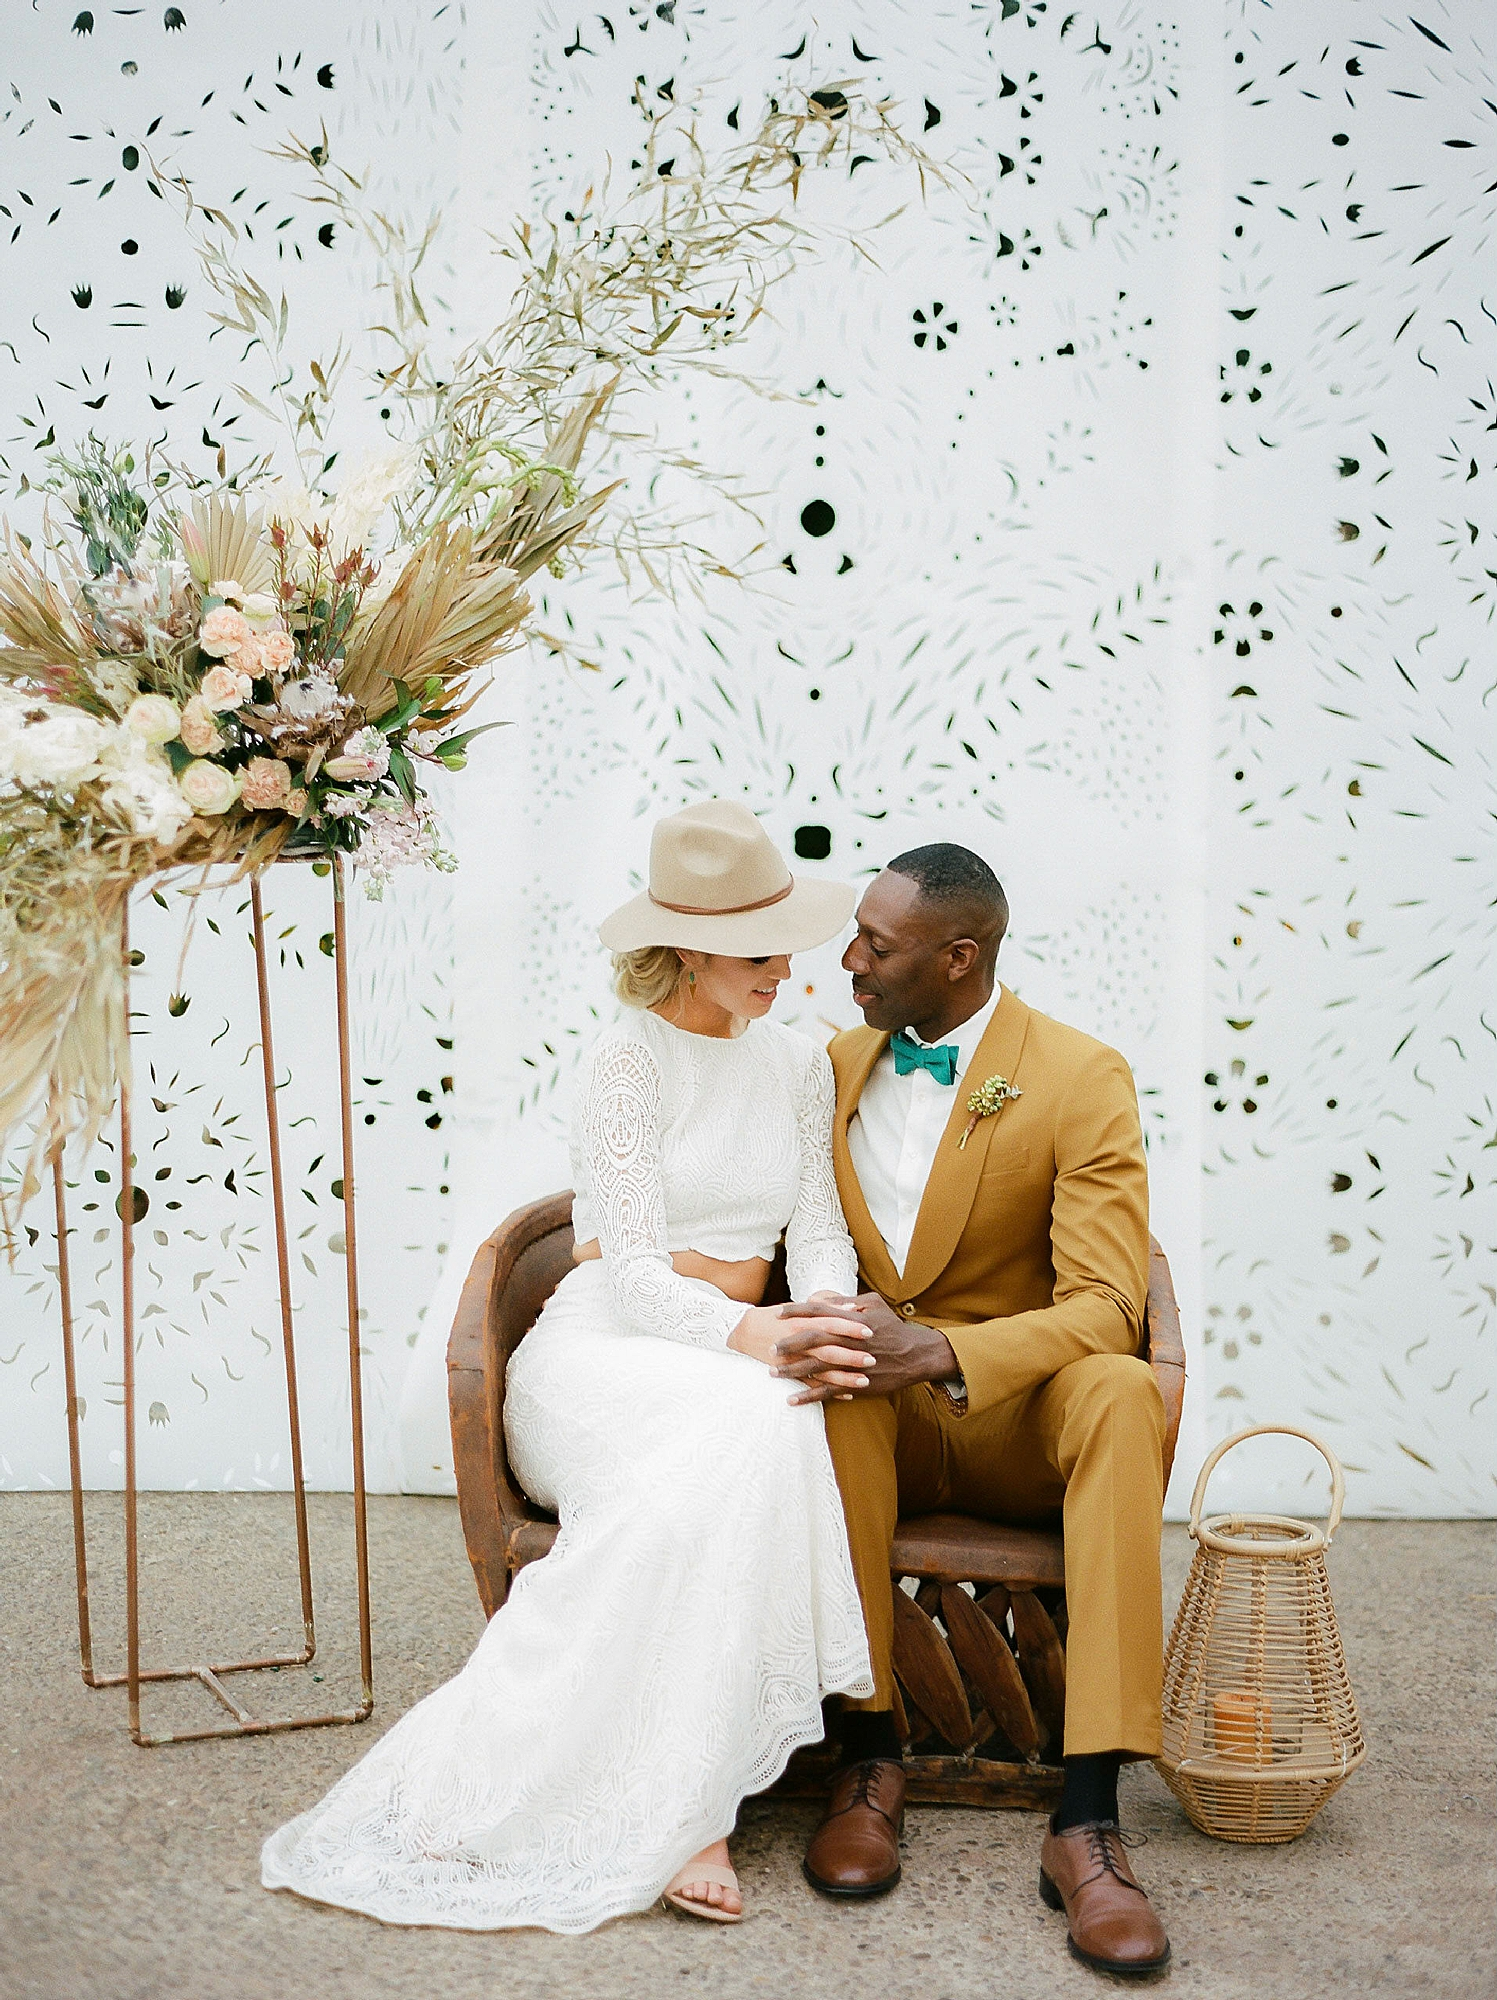 Colorful and Vibrant Wedding Photography at Fairmount Horticultural Center by Magdalena Studios 0044